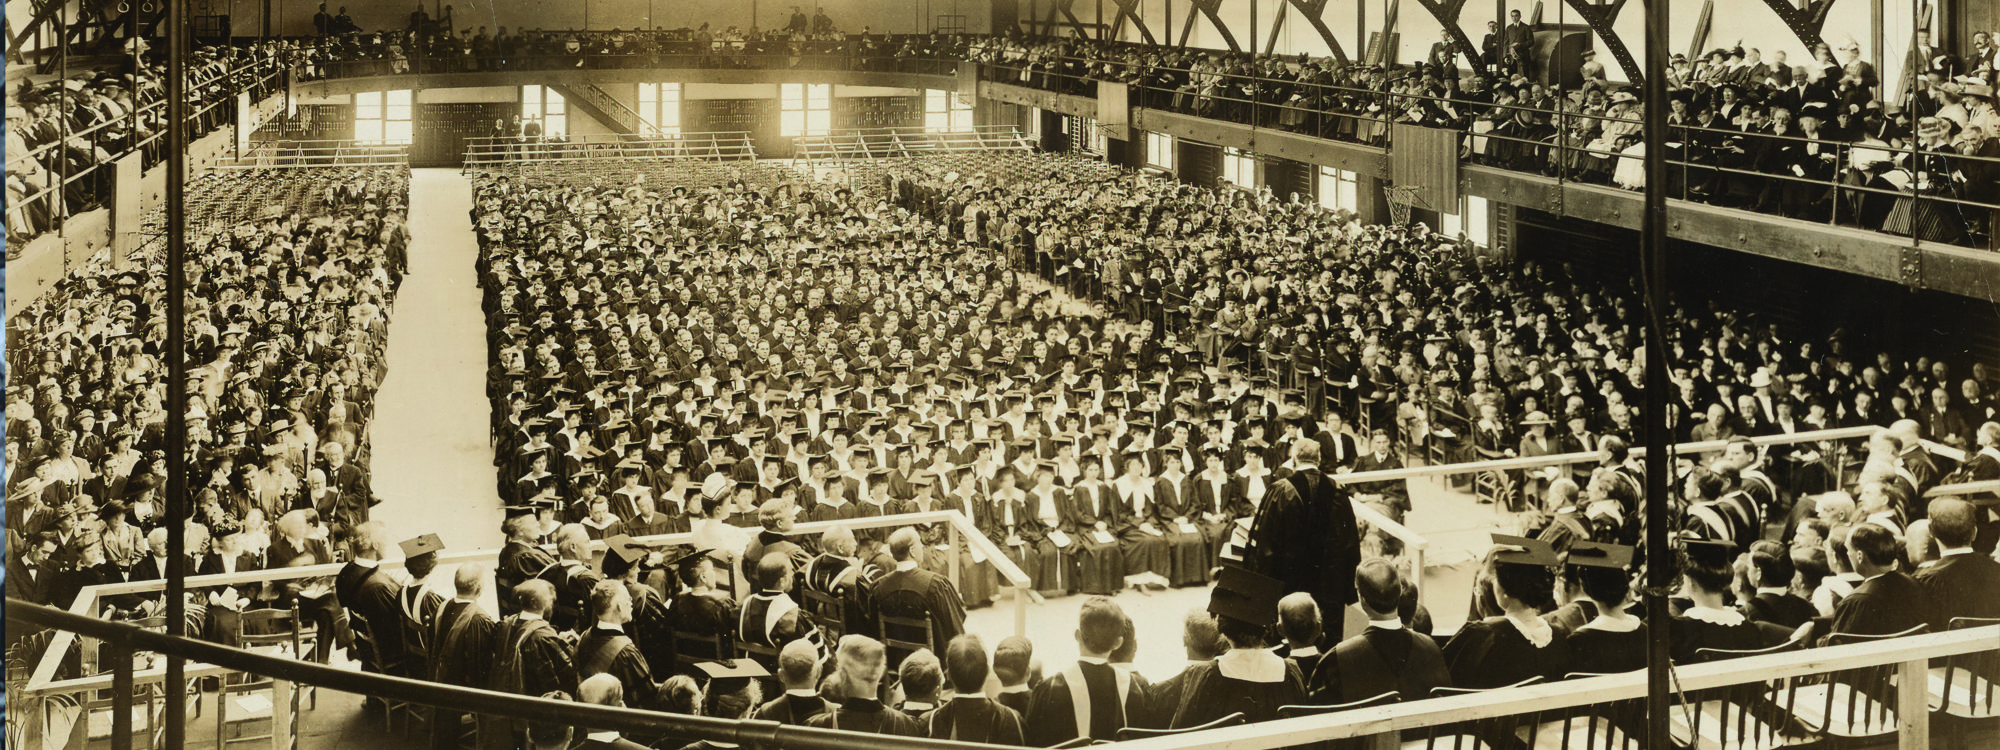 A speaker in academic regalia addresses the crowd of graduates in their caps and gowns in Archbold Gymnasium.